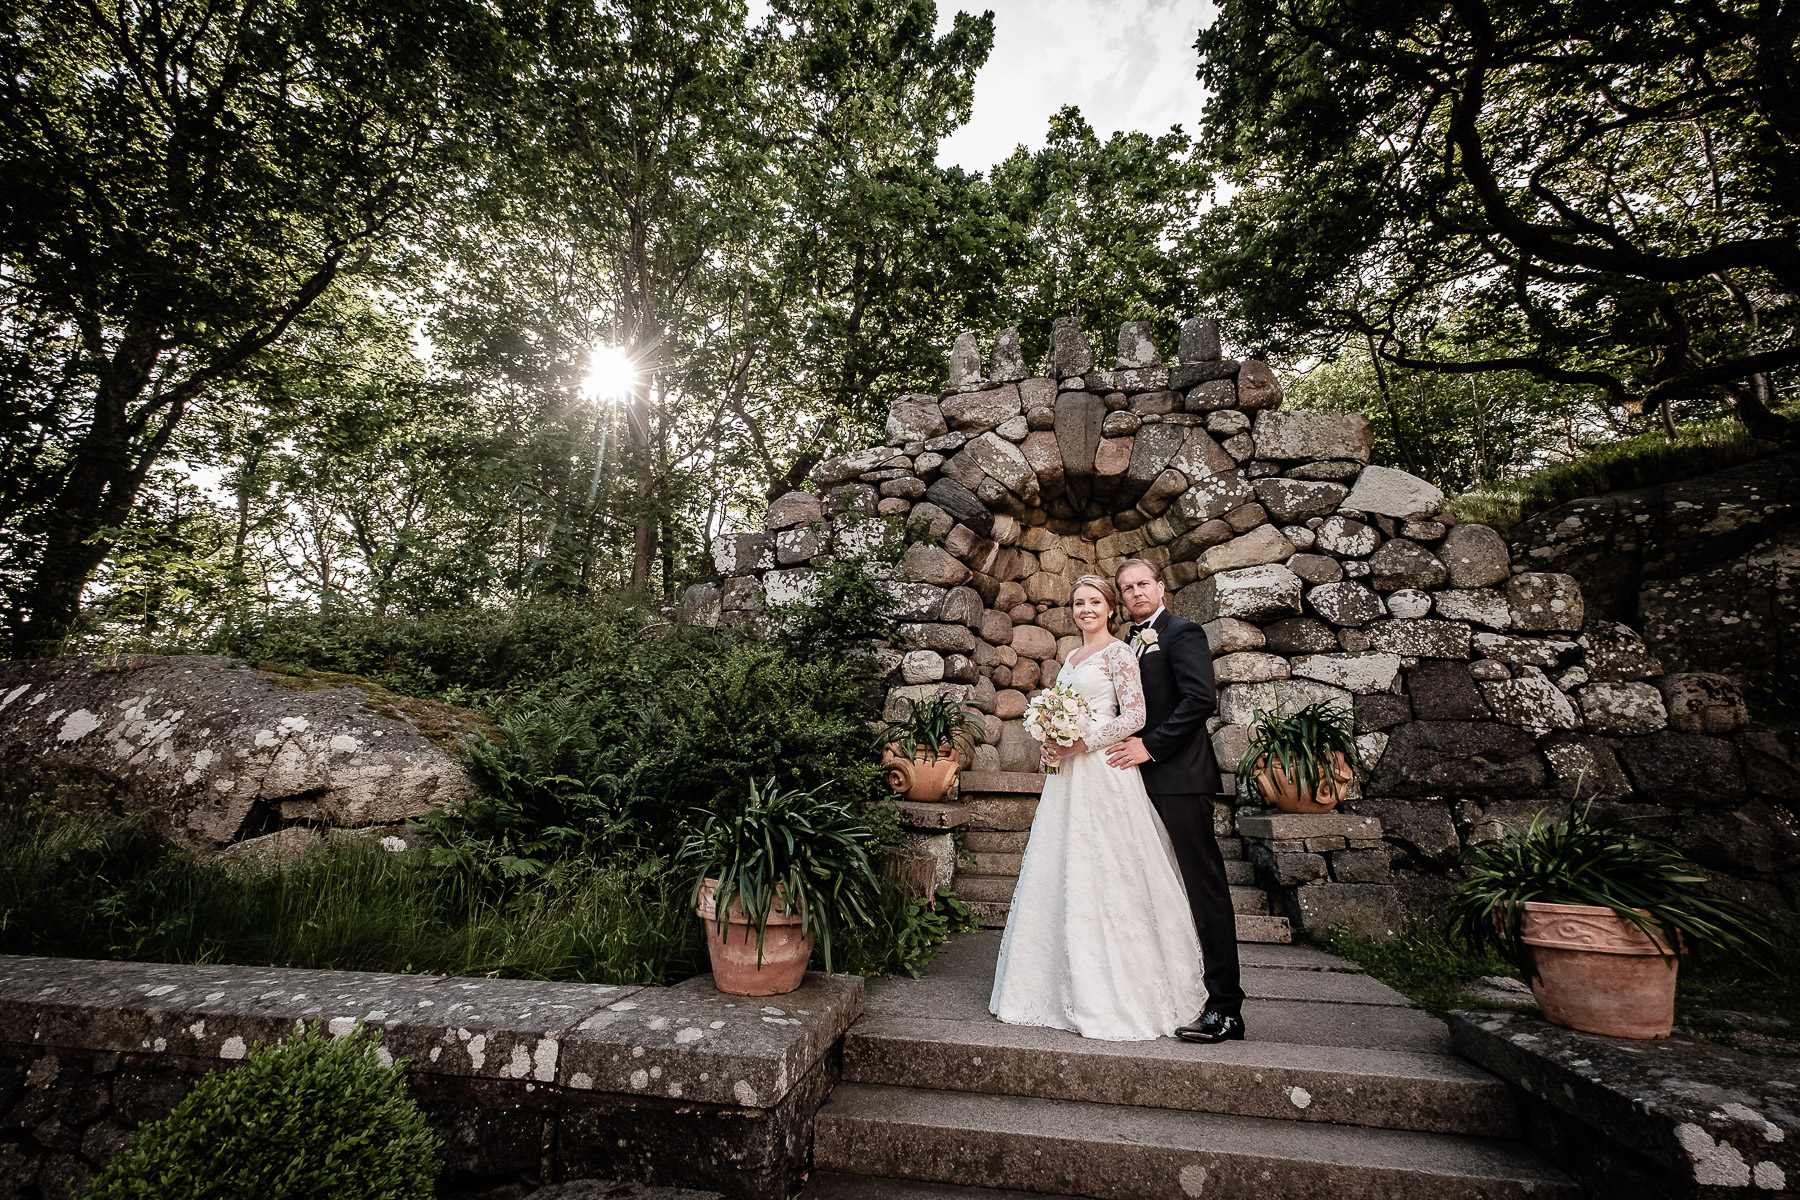 Click to enlarge image hanna&andreas-tjoloholmsslott-ottossonphoto-1023.jpg